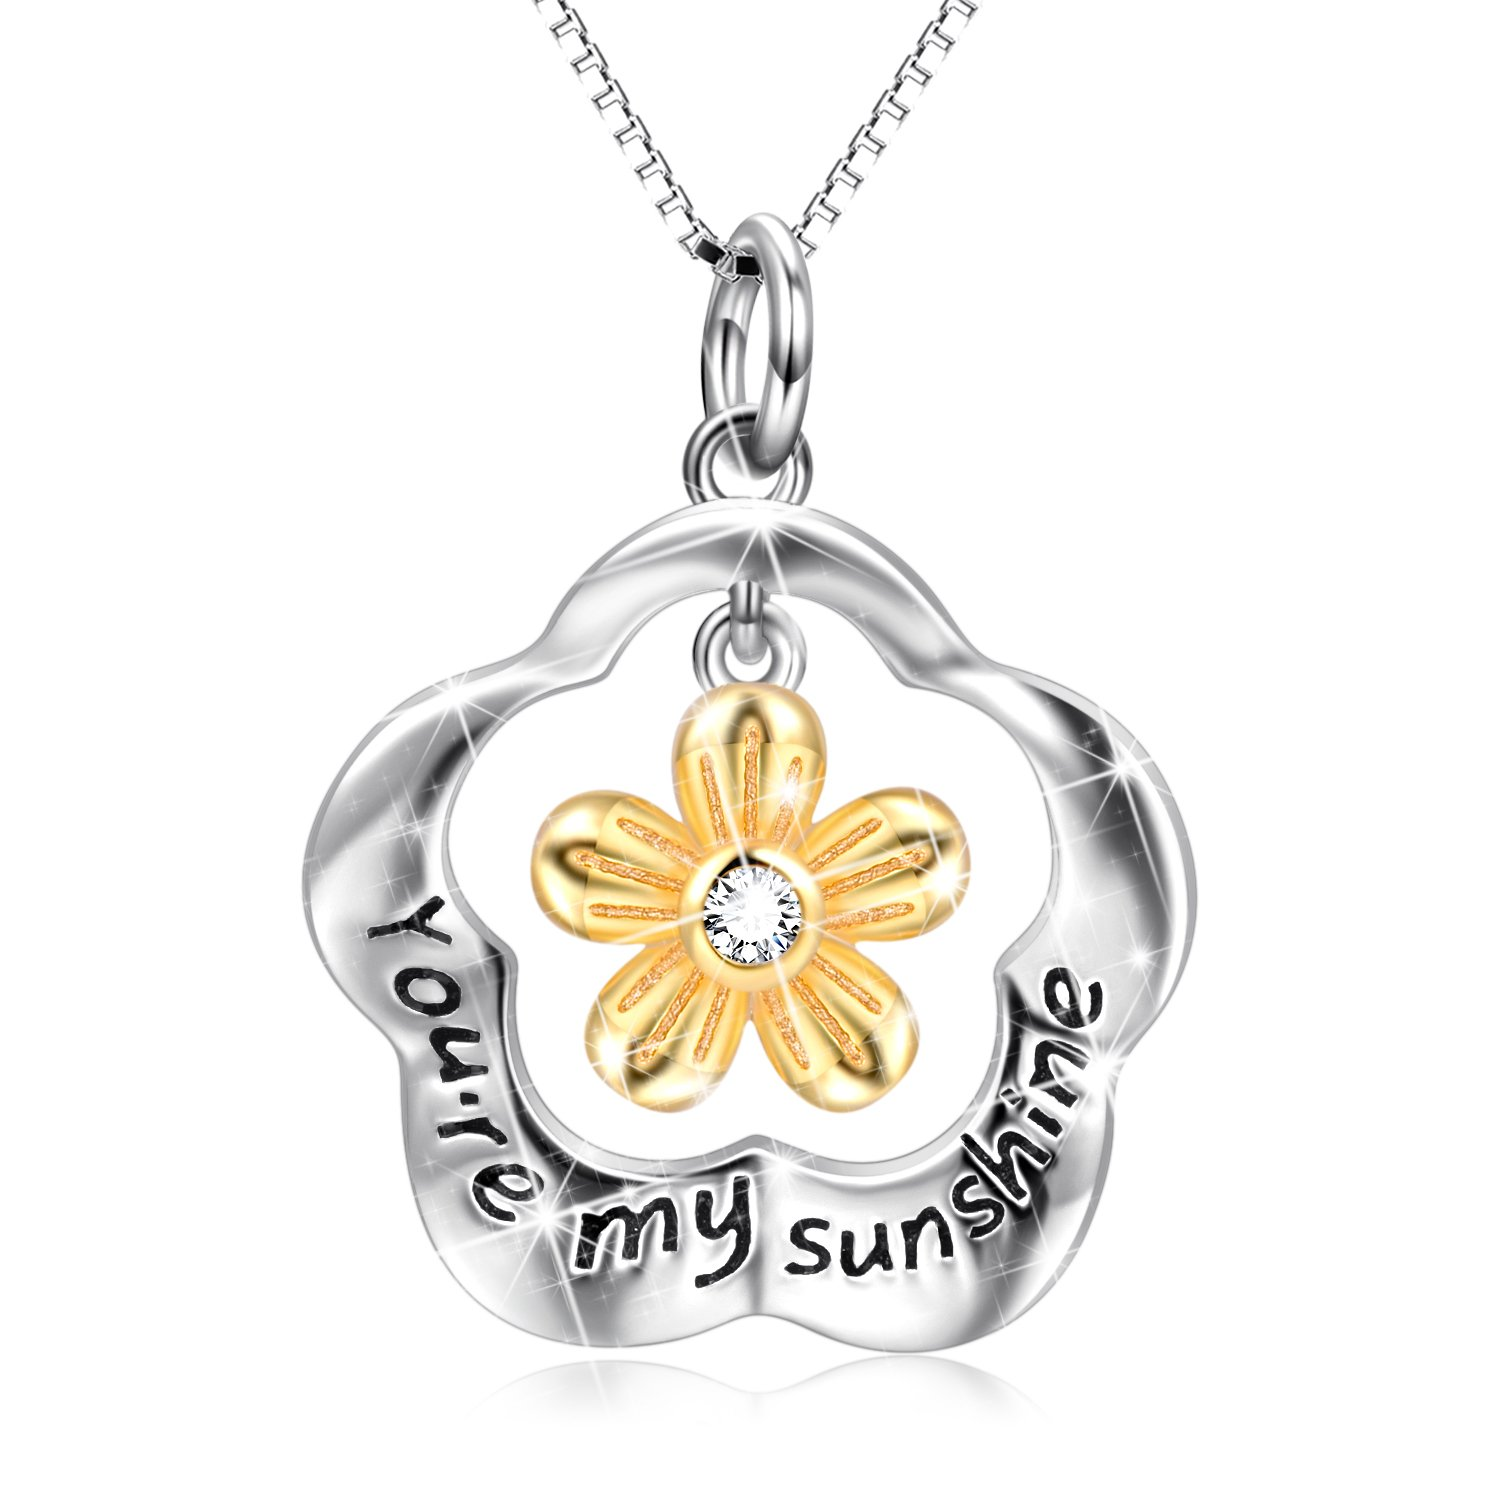 POPLYKE You are My Sunshine Sterling Silver Sunflower Pendant Necklace Gifts for Women Girls by POPLYKE (Image #1)